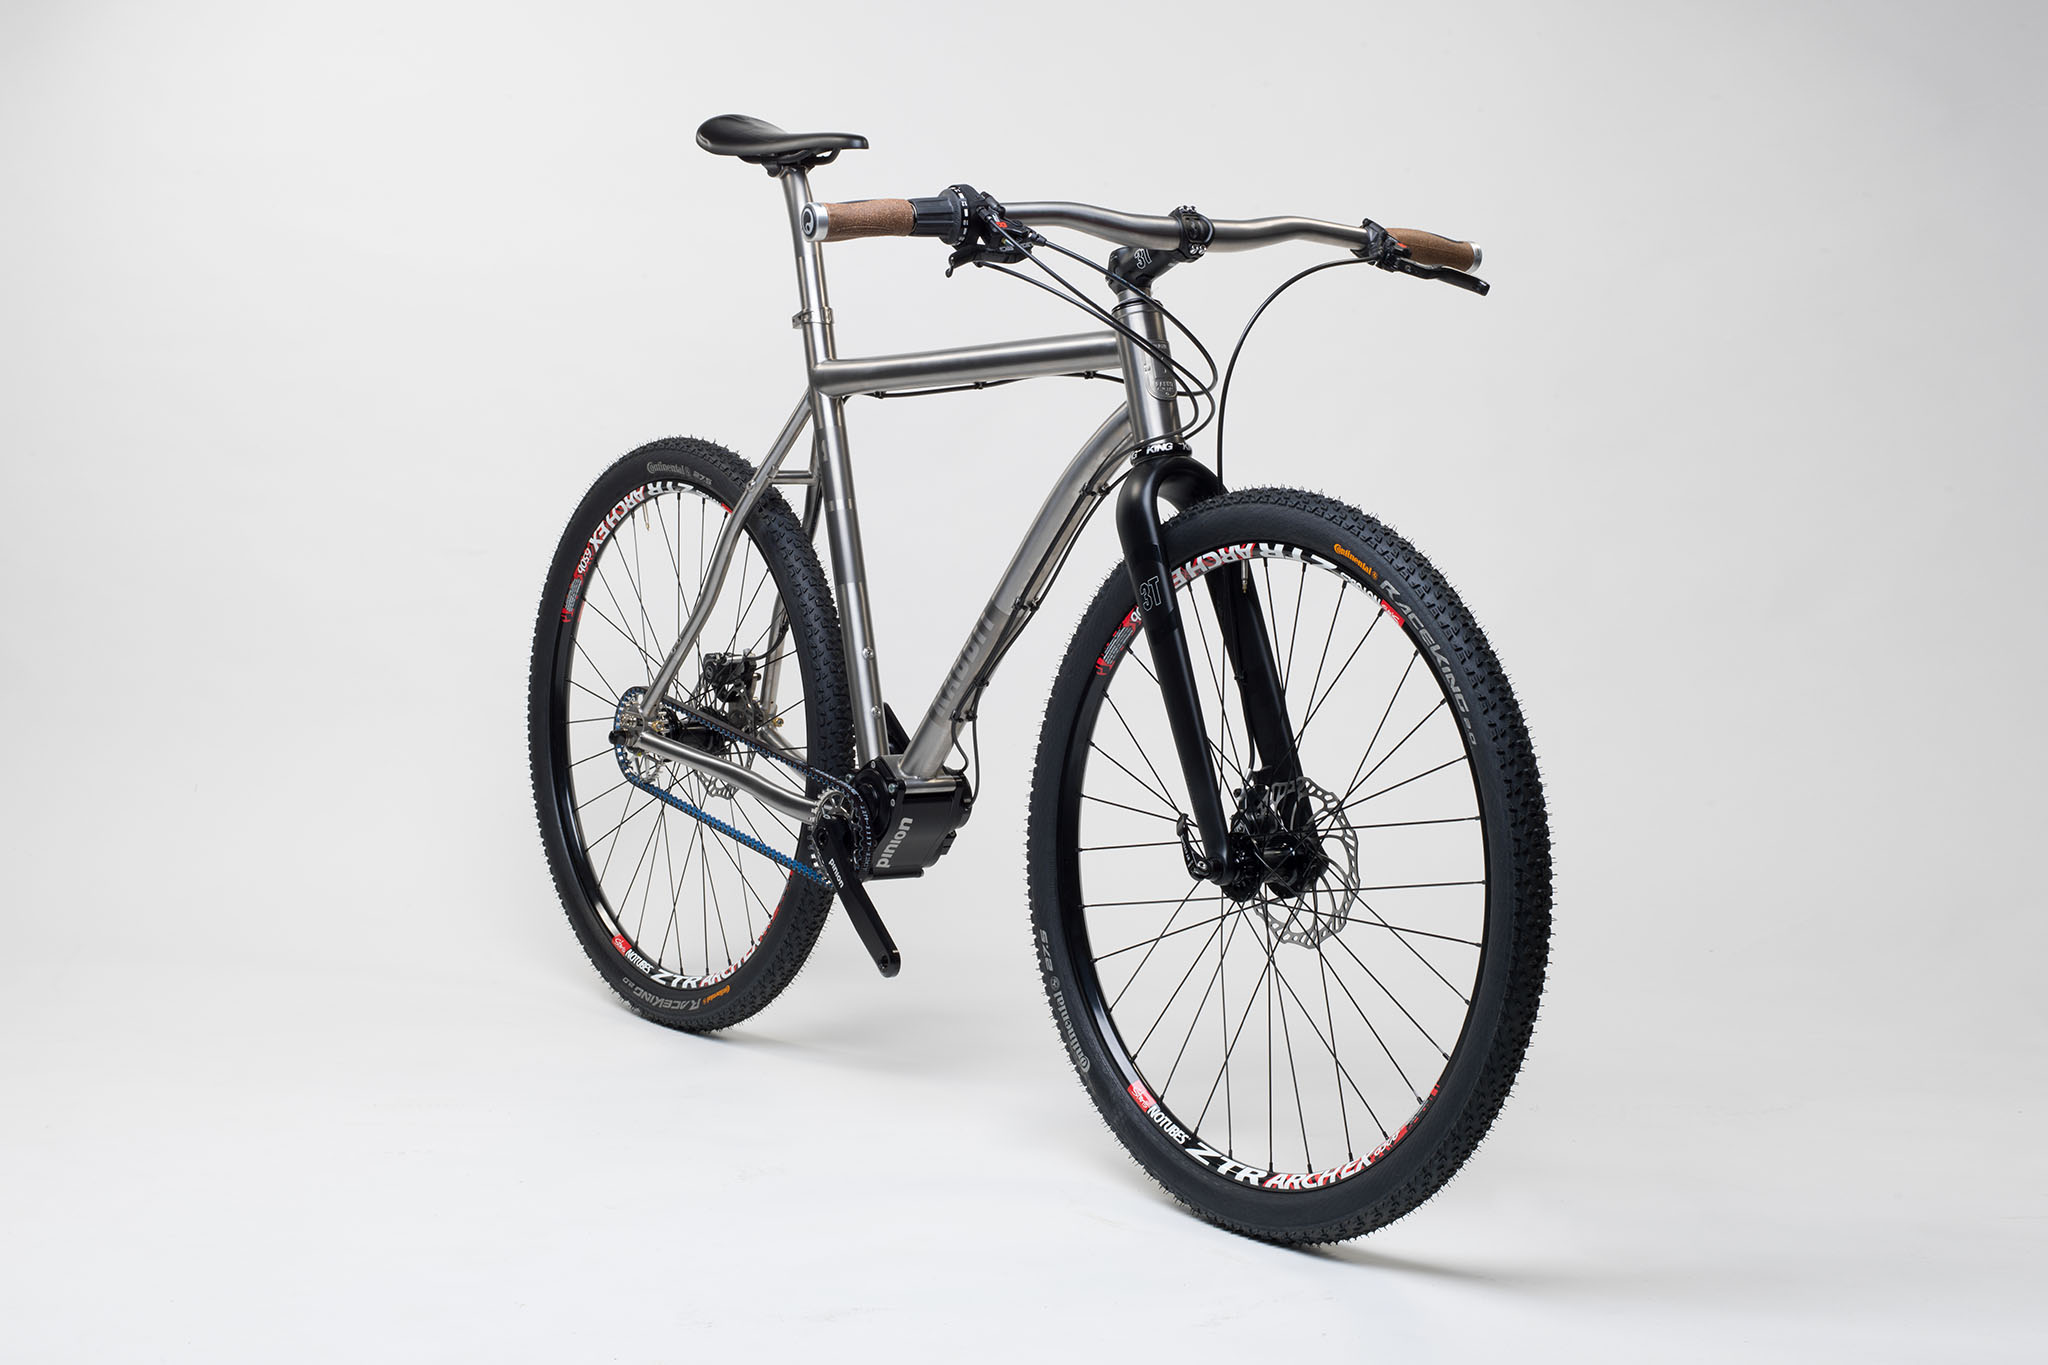 titan_gravel_pinion_bike_09_from_rabbit_titan_cycles_bavaria